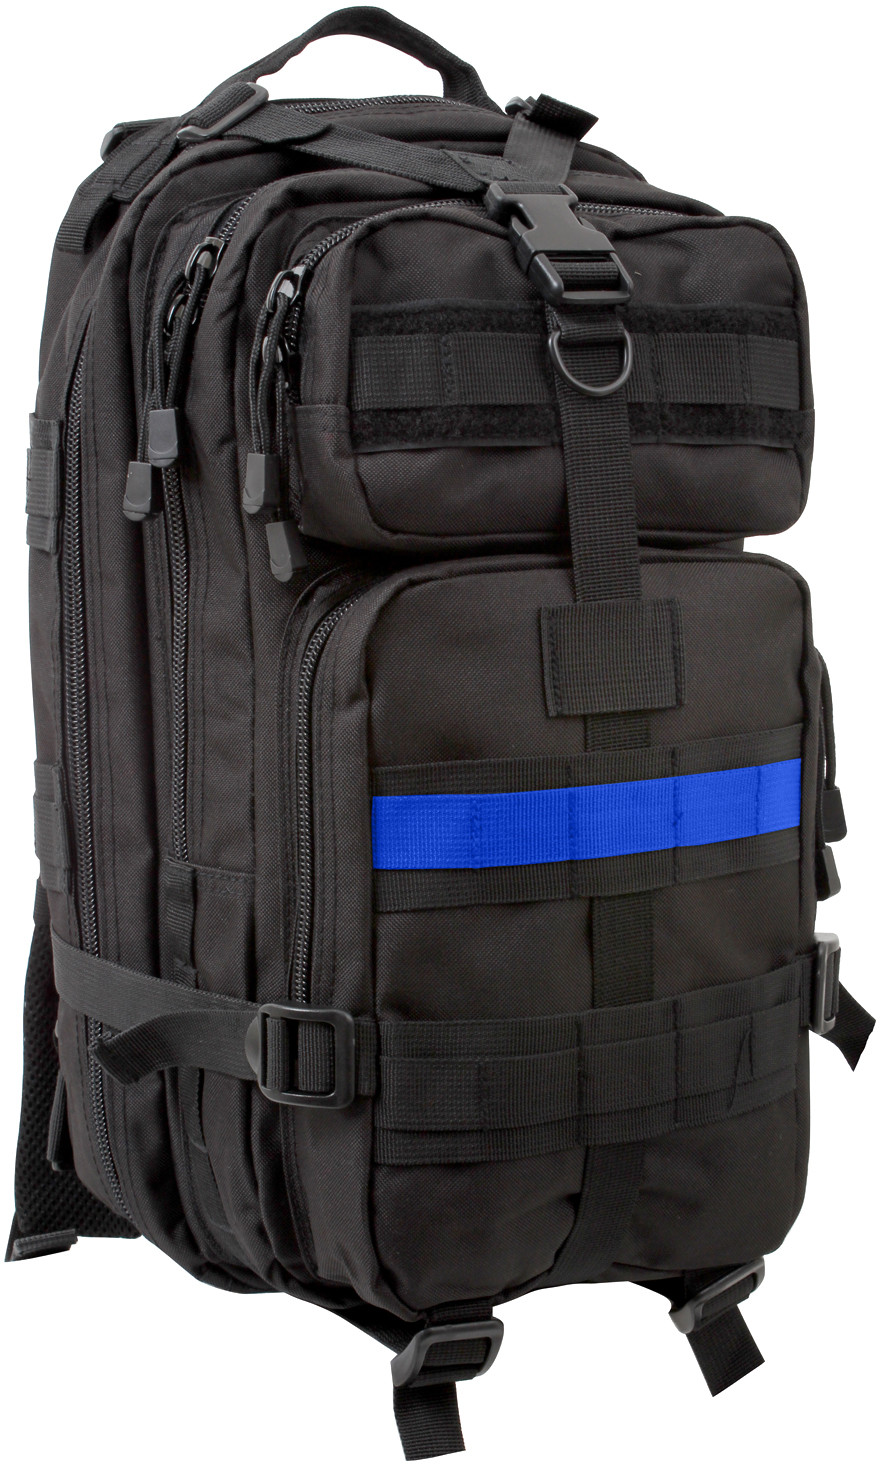 Black Support The Police Medium Transport Backpack w  Thin Blue Line f56915637e6